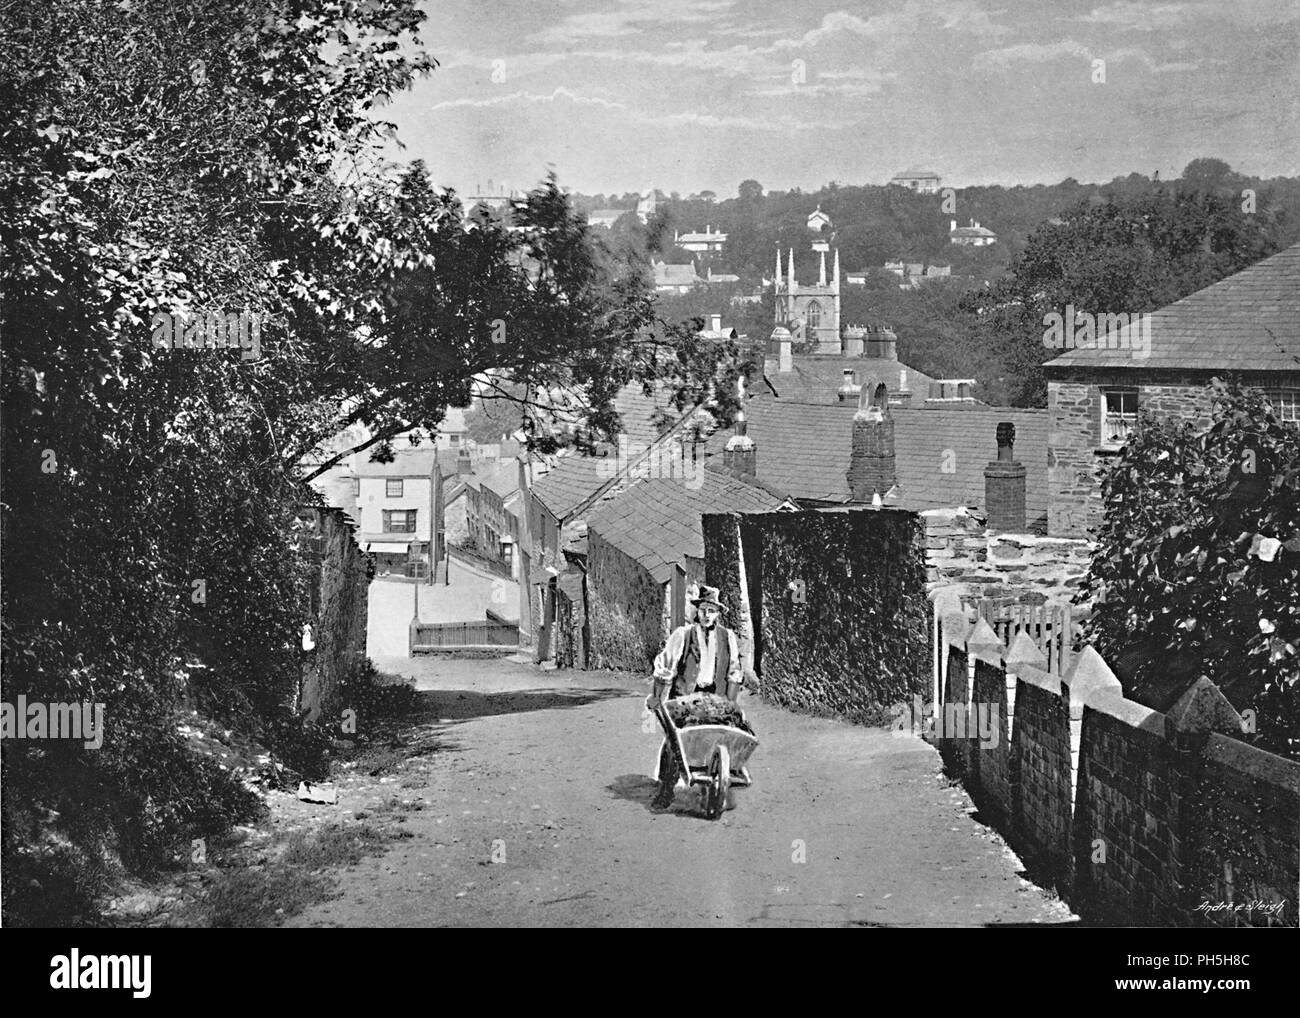 'Bodmin', c1896. From Pictorial England and Wales. [Cassell and Company, Limited, London, Paris & Melbourne, c1896] - Stock Image